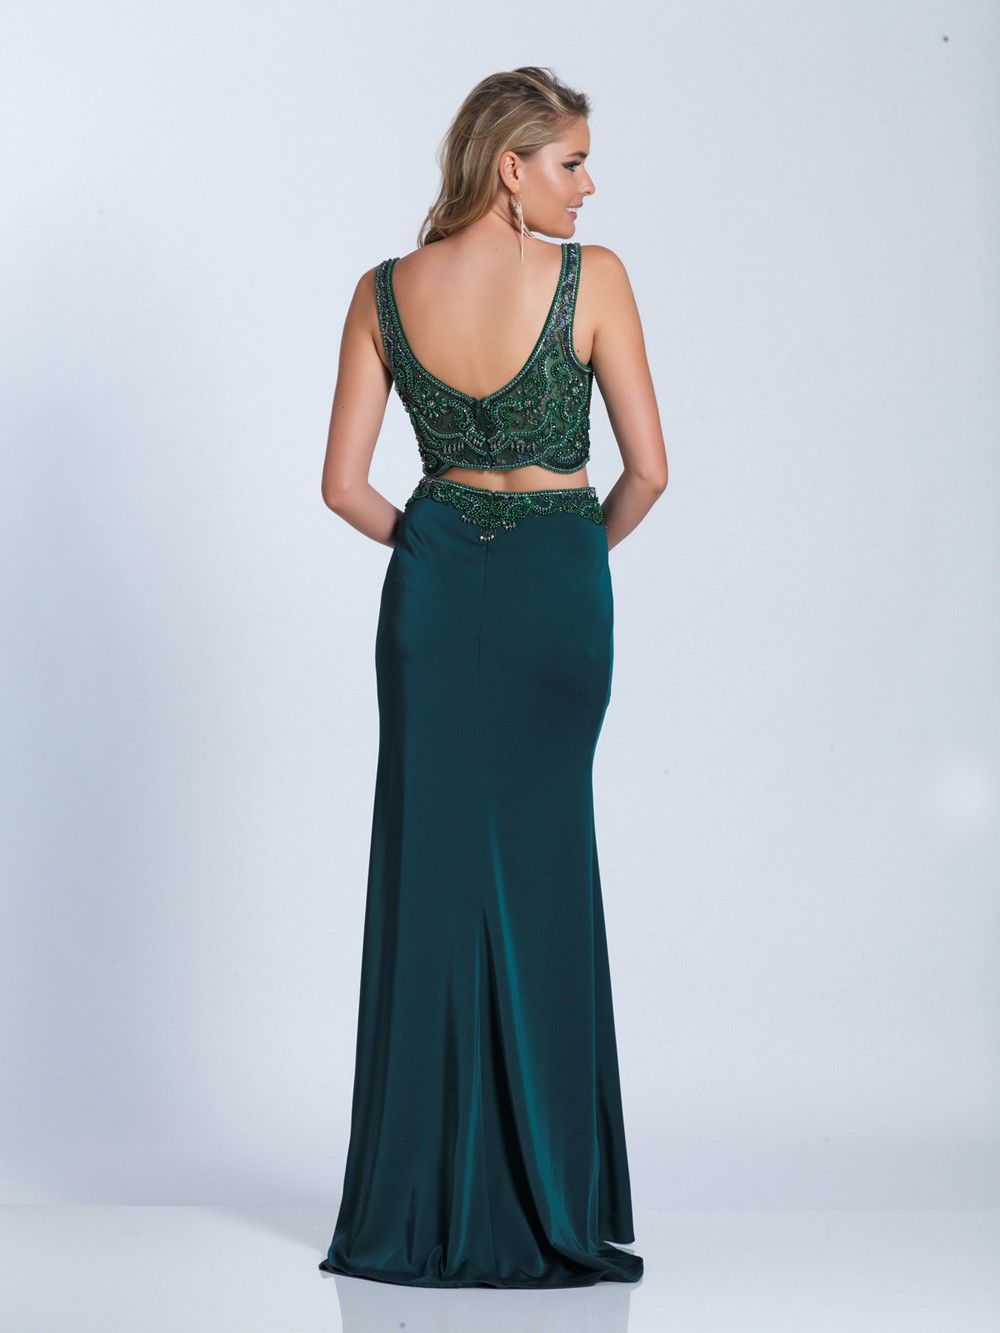 bb87bb374c57 Dave and Johnny 3158 Dress - MadameBridal.com #cheappromdress #prom #dress # promdress #daveandjohnny #formal